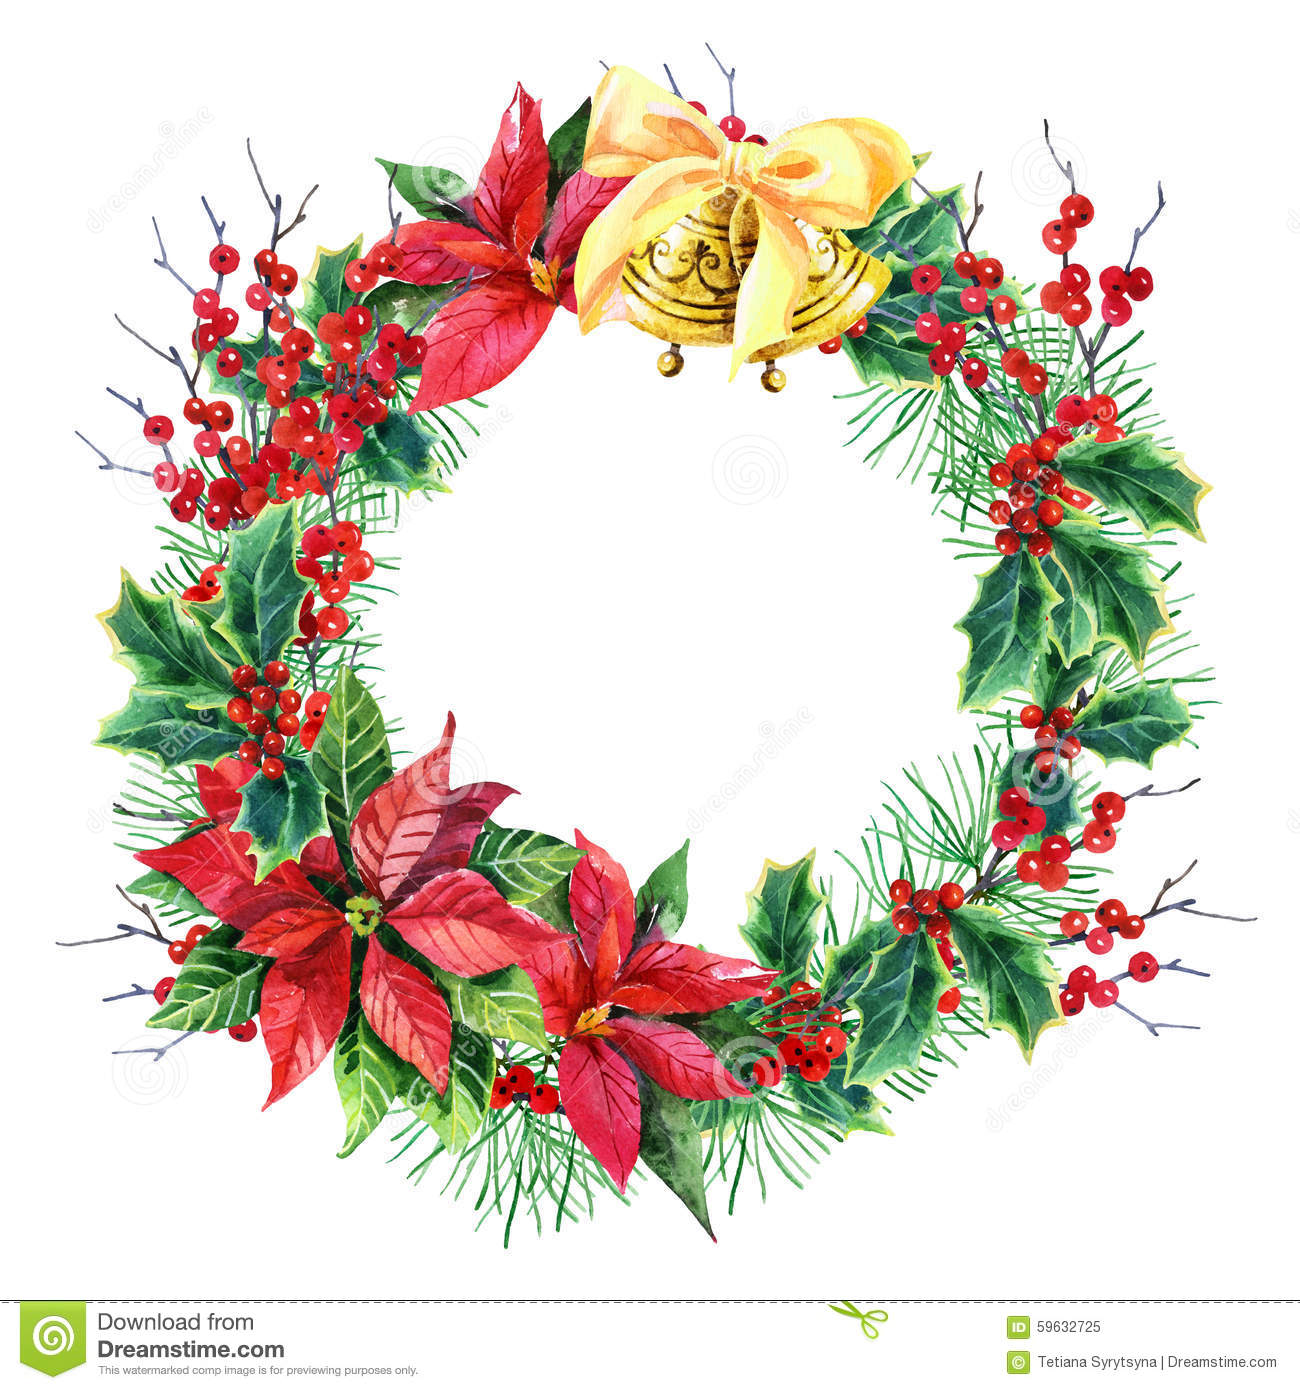 Watercolor Christmas wreath with poinsettia plant, pine tree branches ...